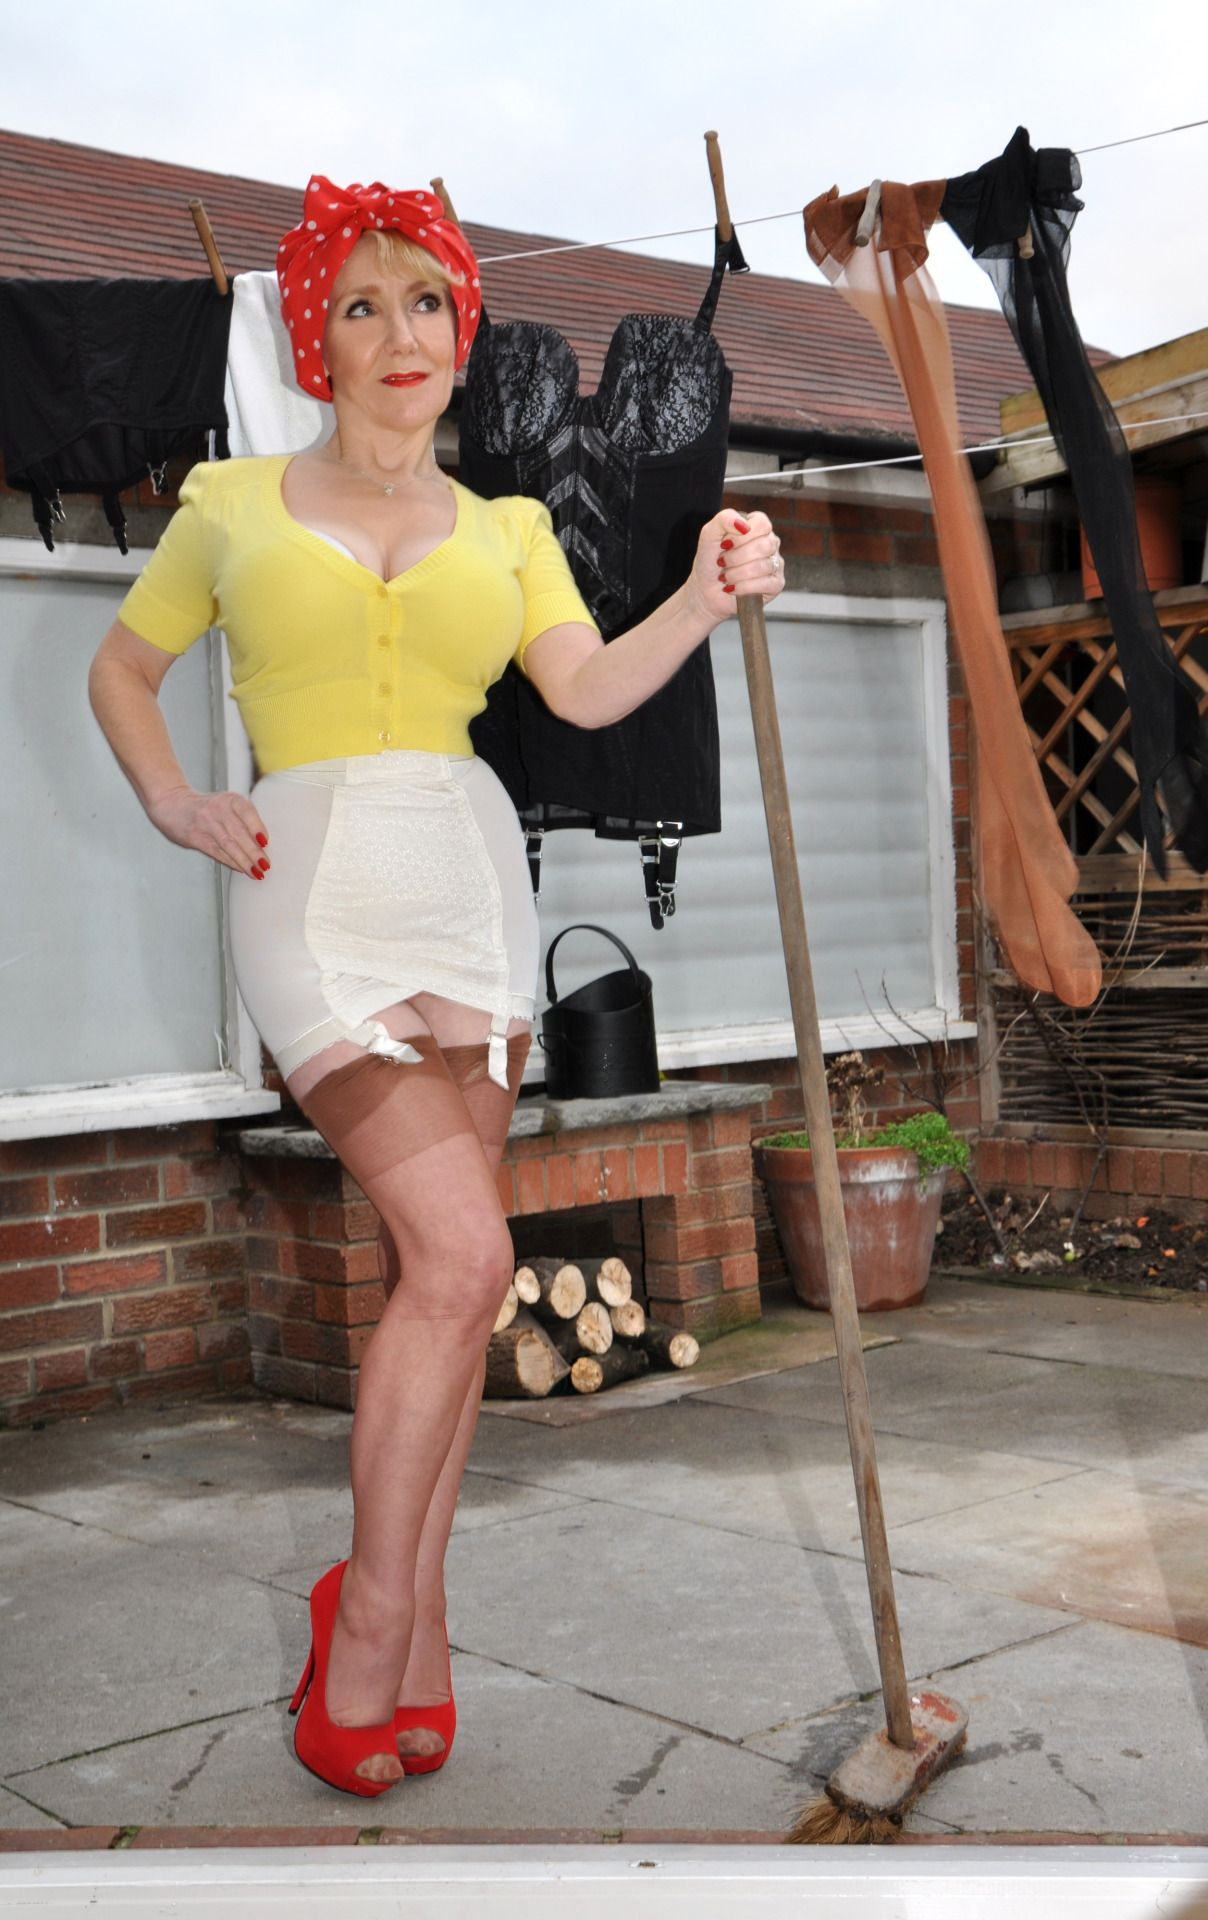 Ju Elle, The perfect housewife | Pin Ups I luv | Pinterest ...